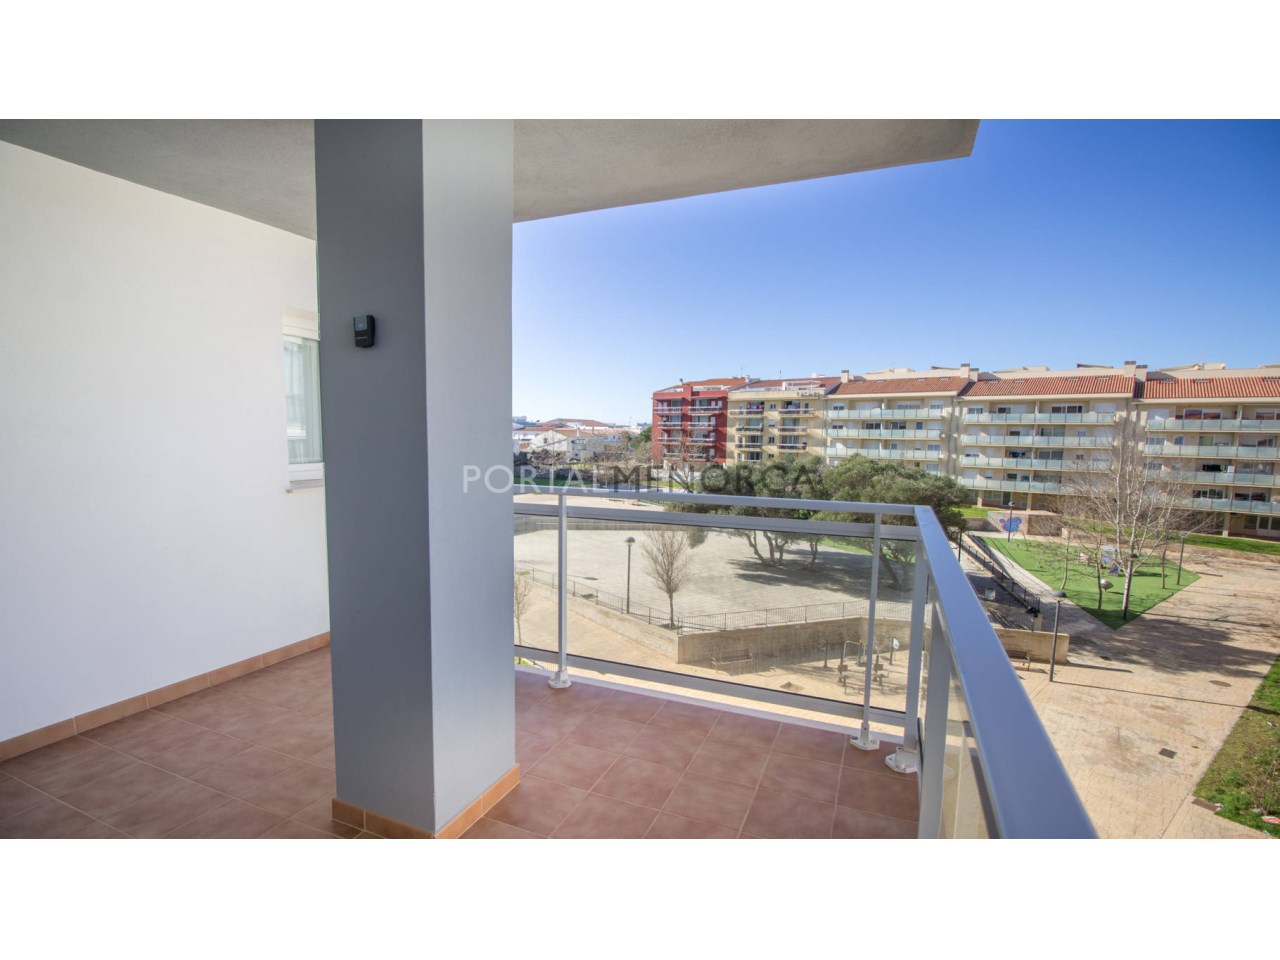 Apartment with 3 bedrooms for sale in Menorca